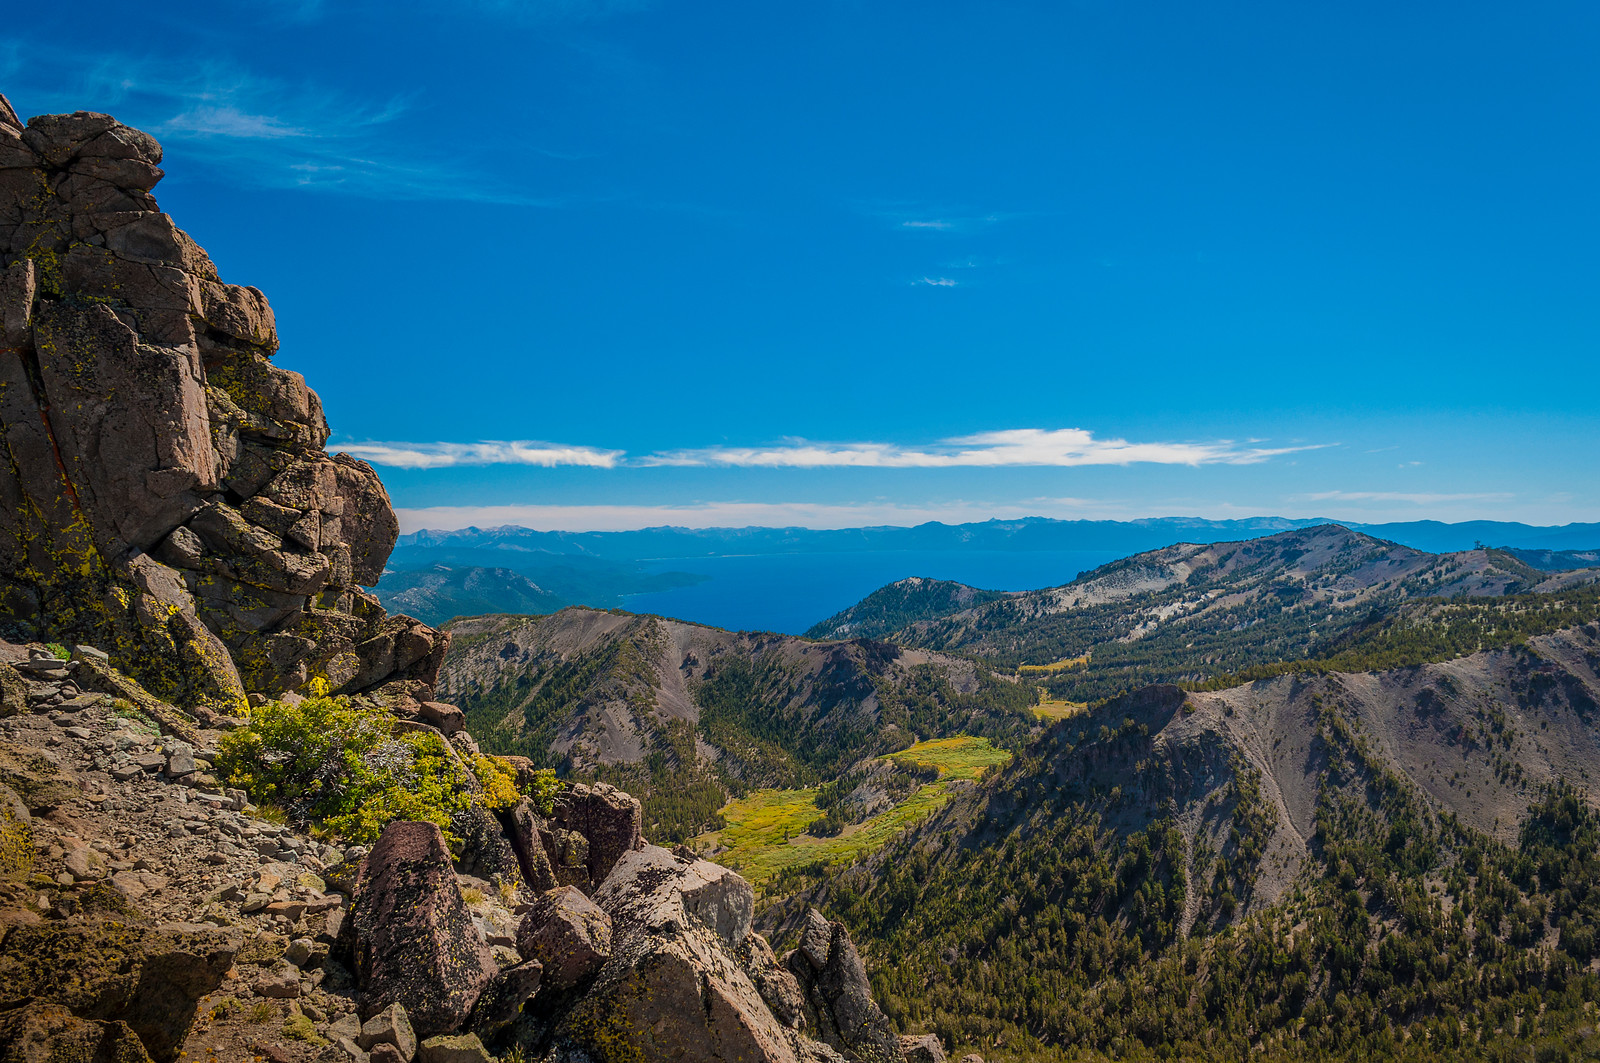 Lake Tahoe view from Mt Rose